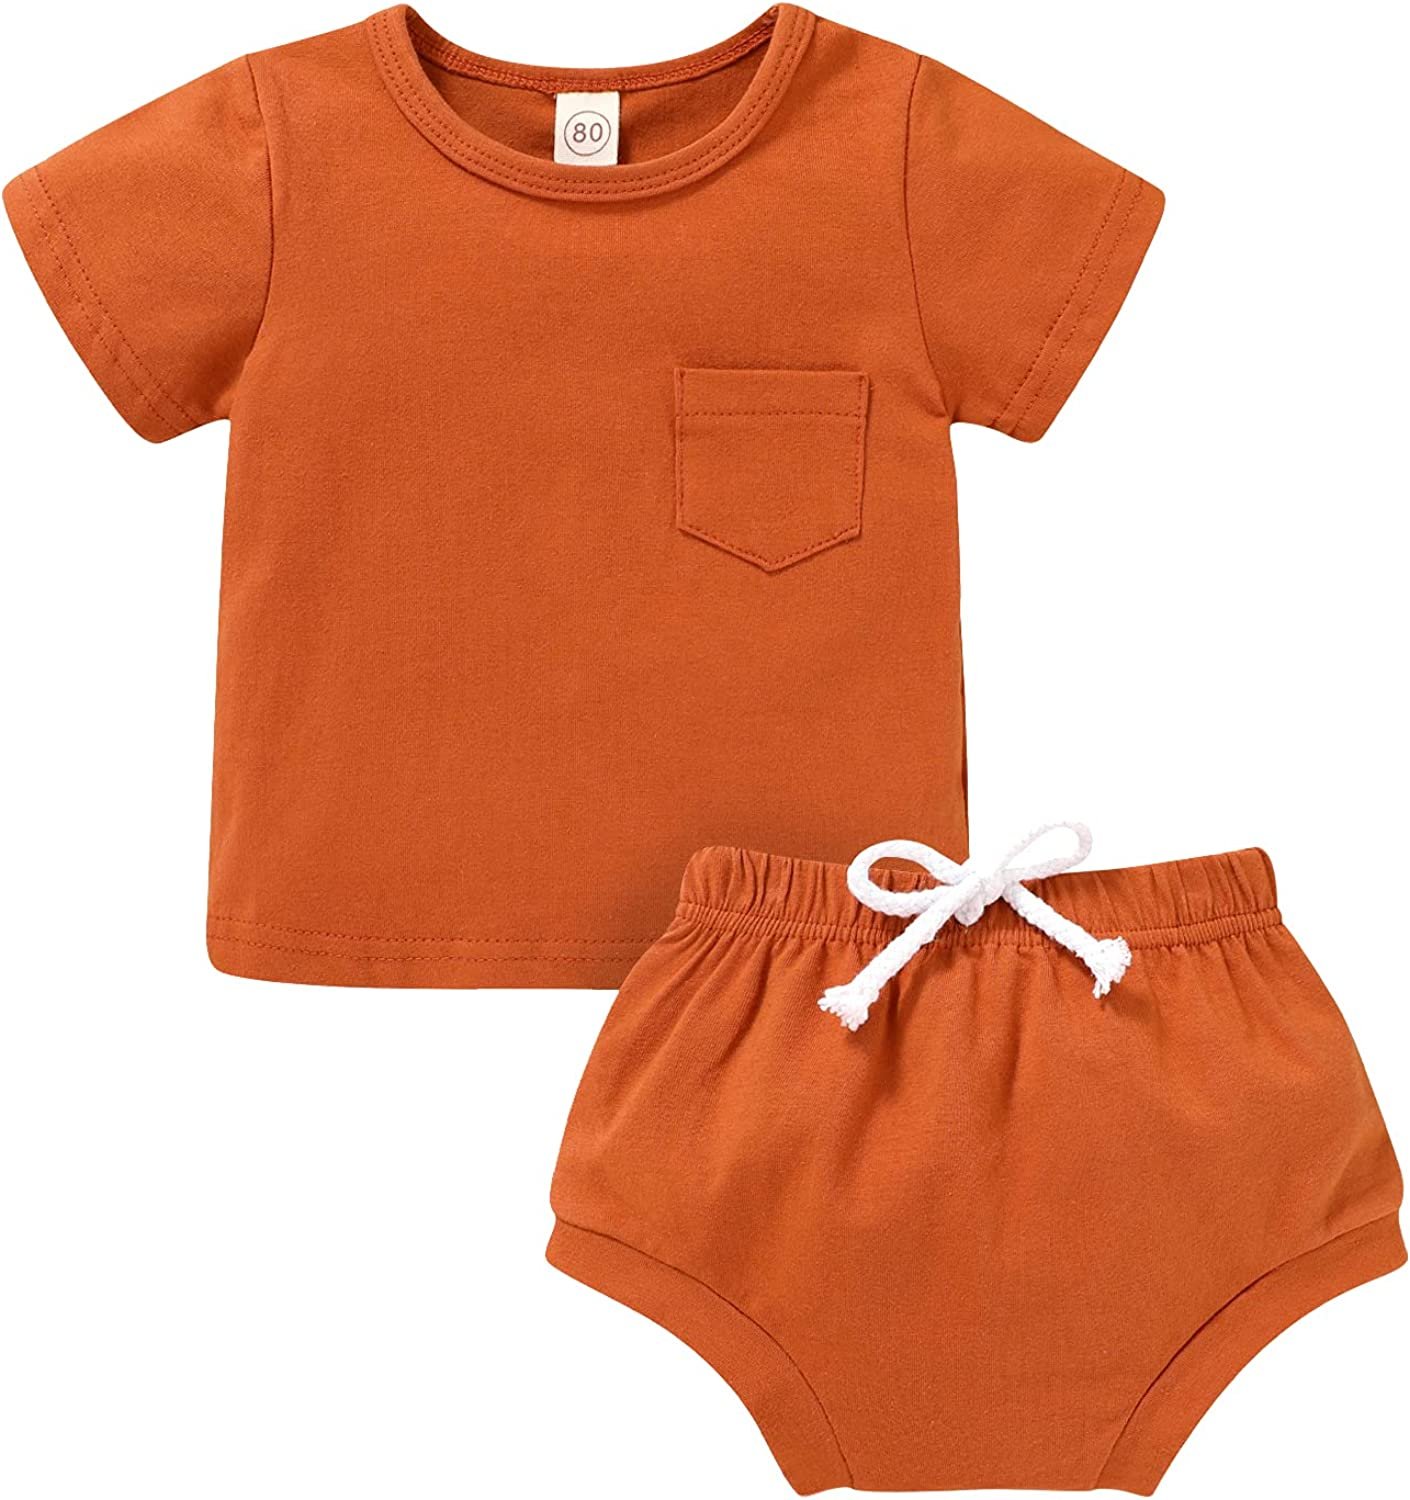 Newborn Baby Boy Clothes Set Cotton Outfits Unisex Toddler Summer Short Sleeve Tops and Shorts